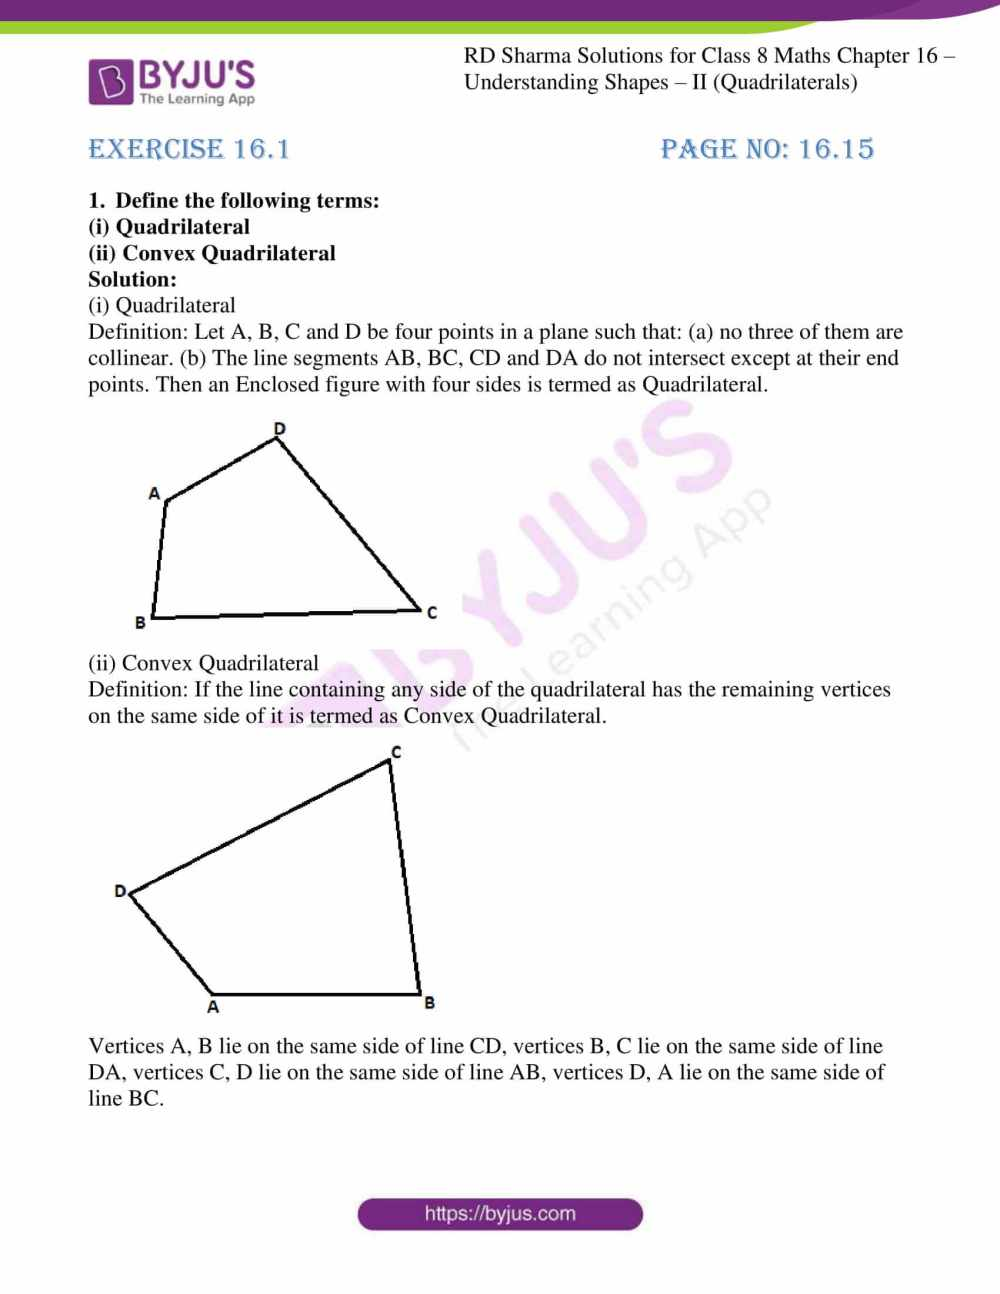 medium resolution of RD Sharma Solutions for Class 8 Chapter 16 Understanding Shapes- II ( Quadrilaterals) download free pdf